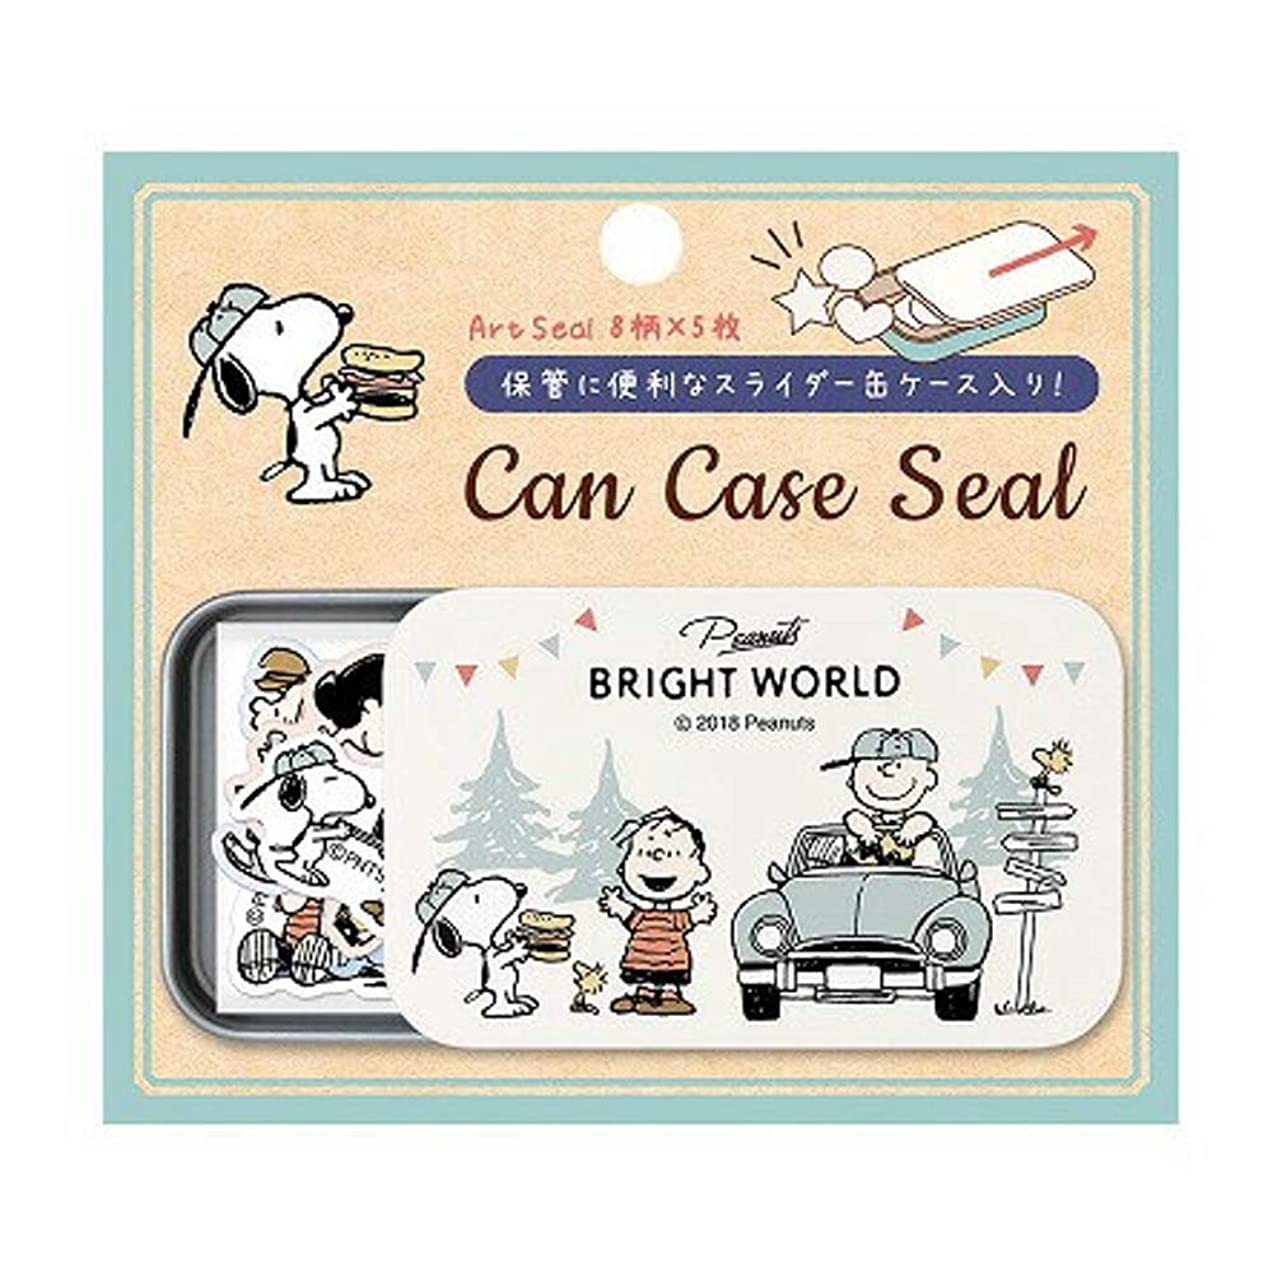 Kamio Japan Japanese Art Paper Stickers with Metal Case/Pack of 40 (Snoopy Glamping [ 07464 ])